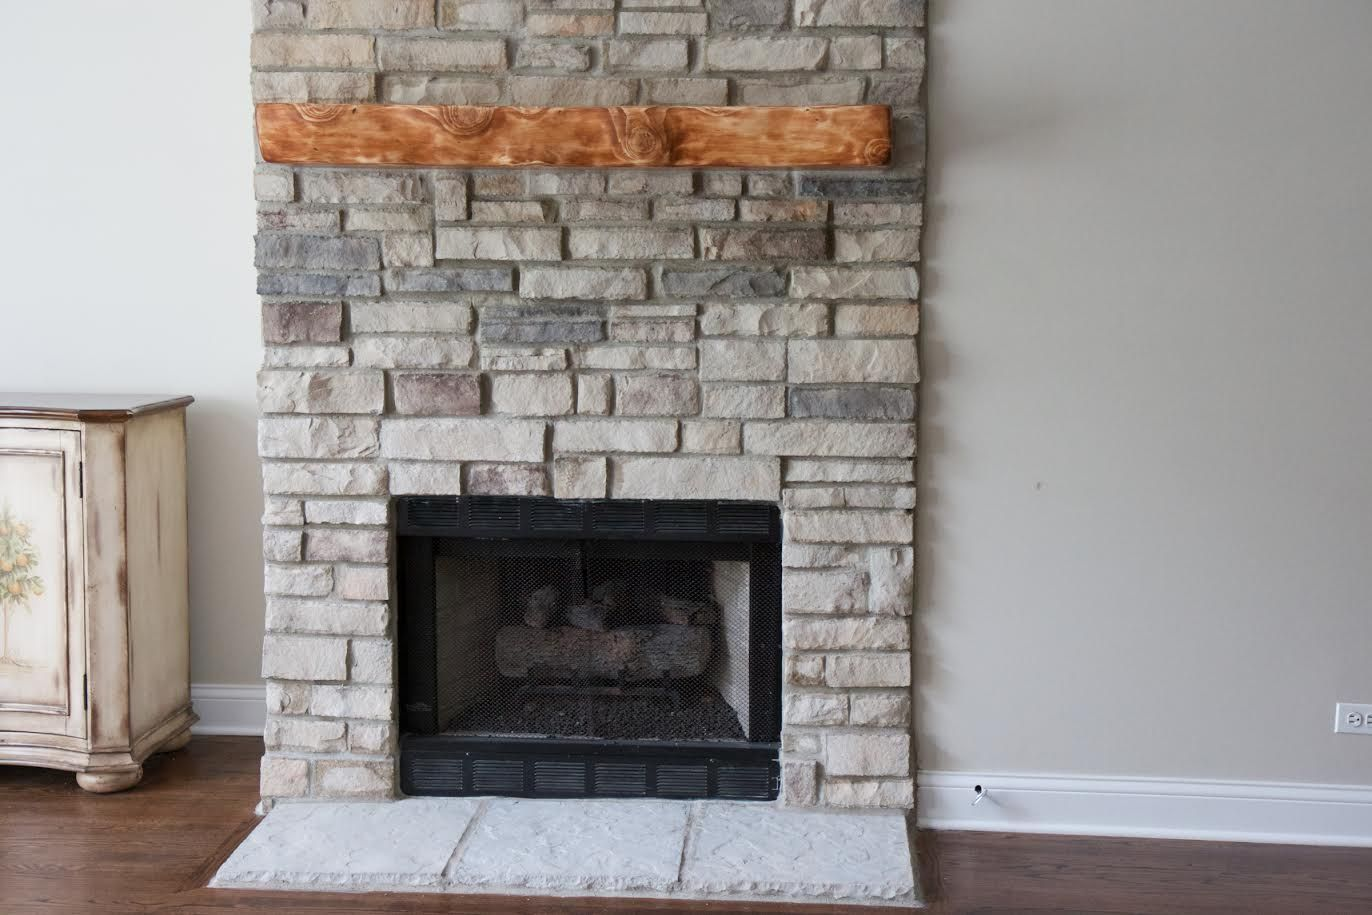 Stone Style New Ledge Stone Color Custom Color Mantel Info If Present Live Edge Beam With Clear Stain Fireplace Pictures Fireplace Ledge Stone Fireplace